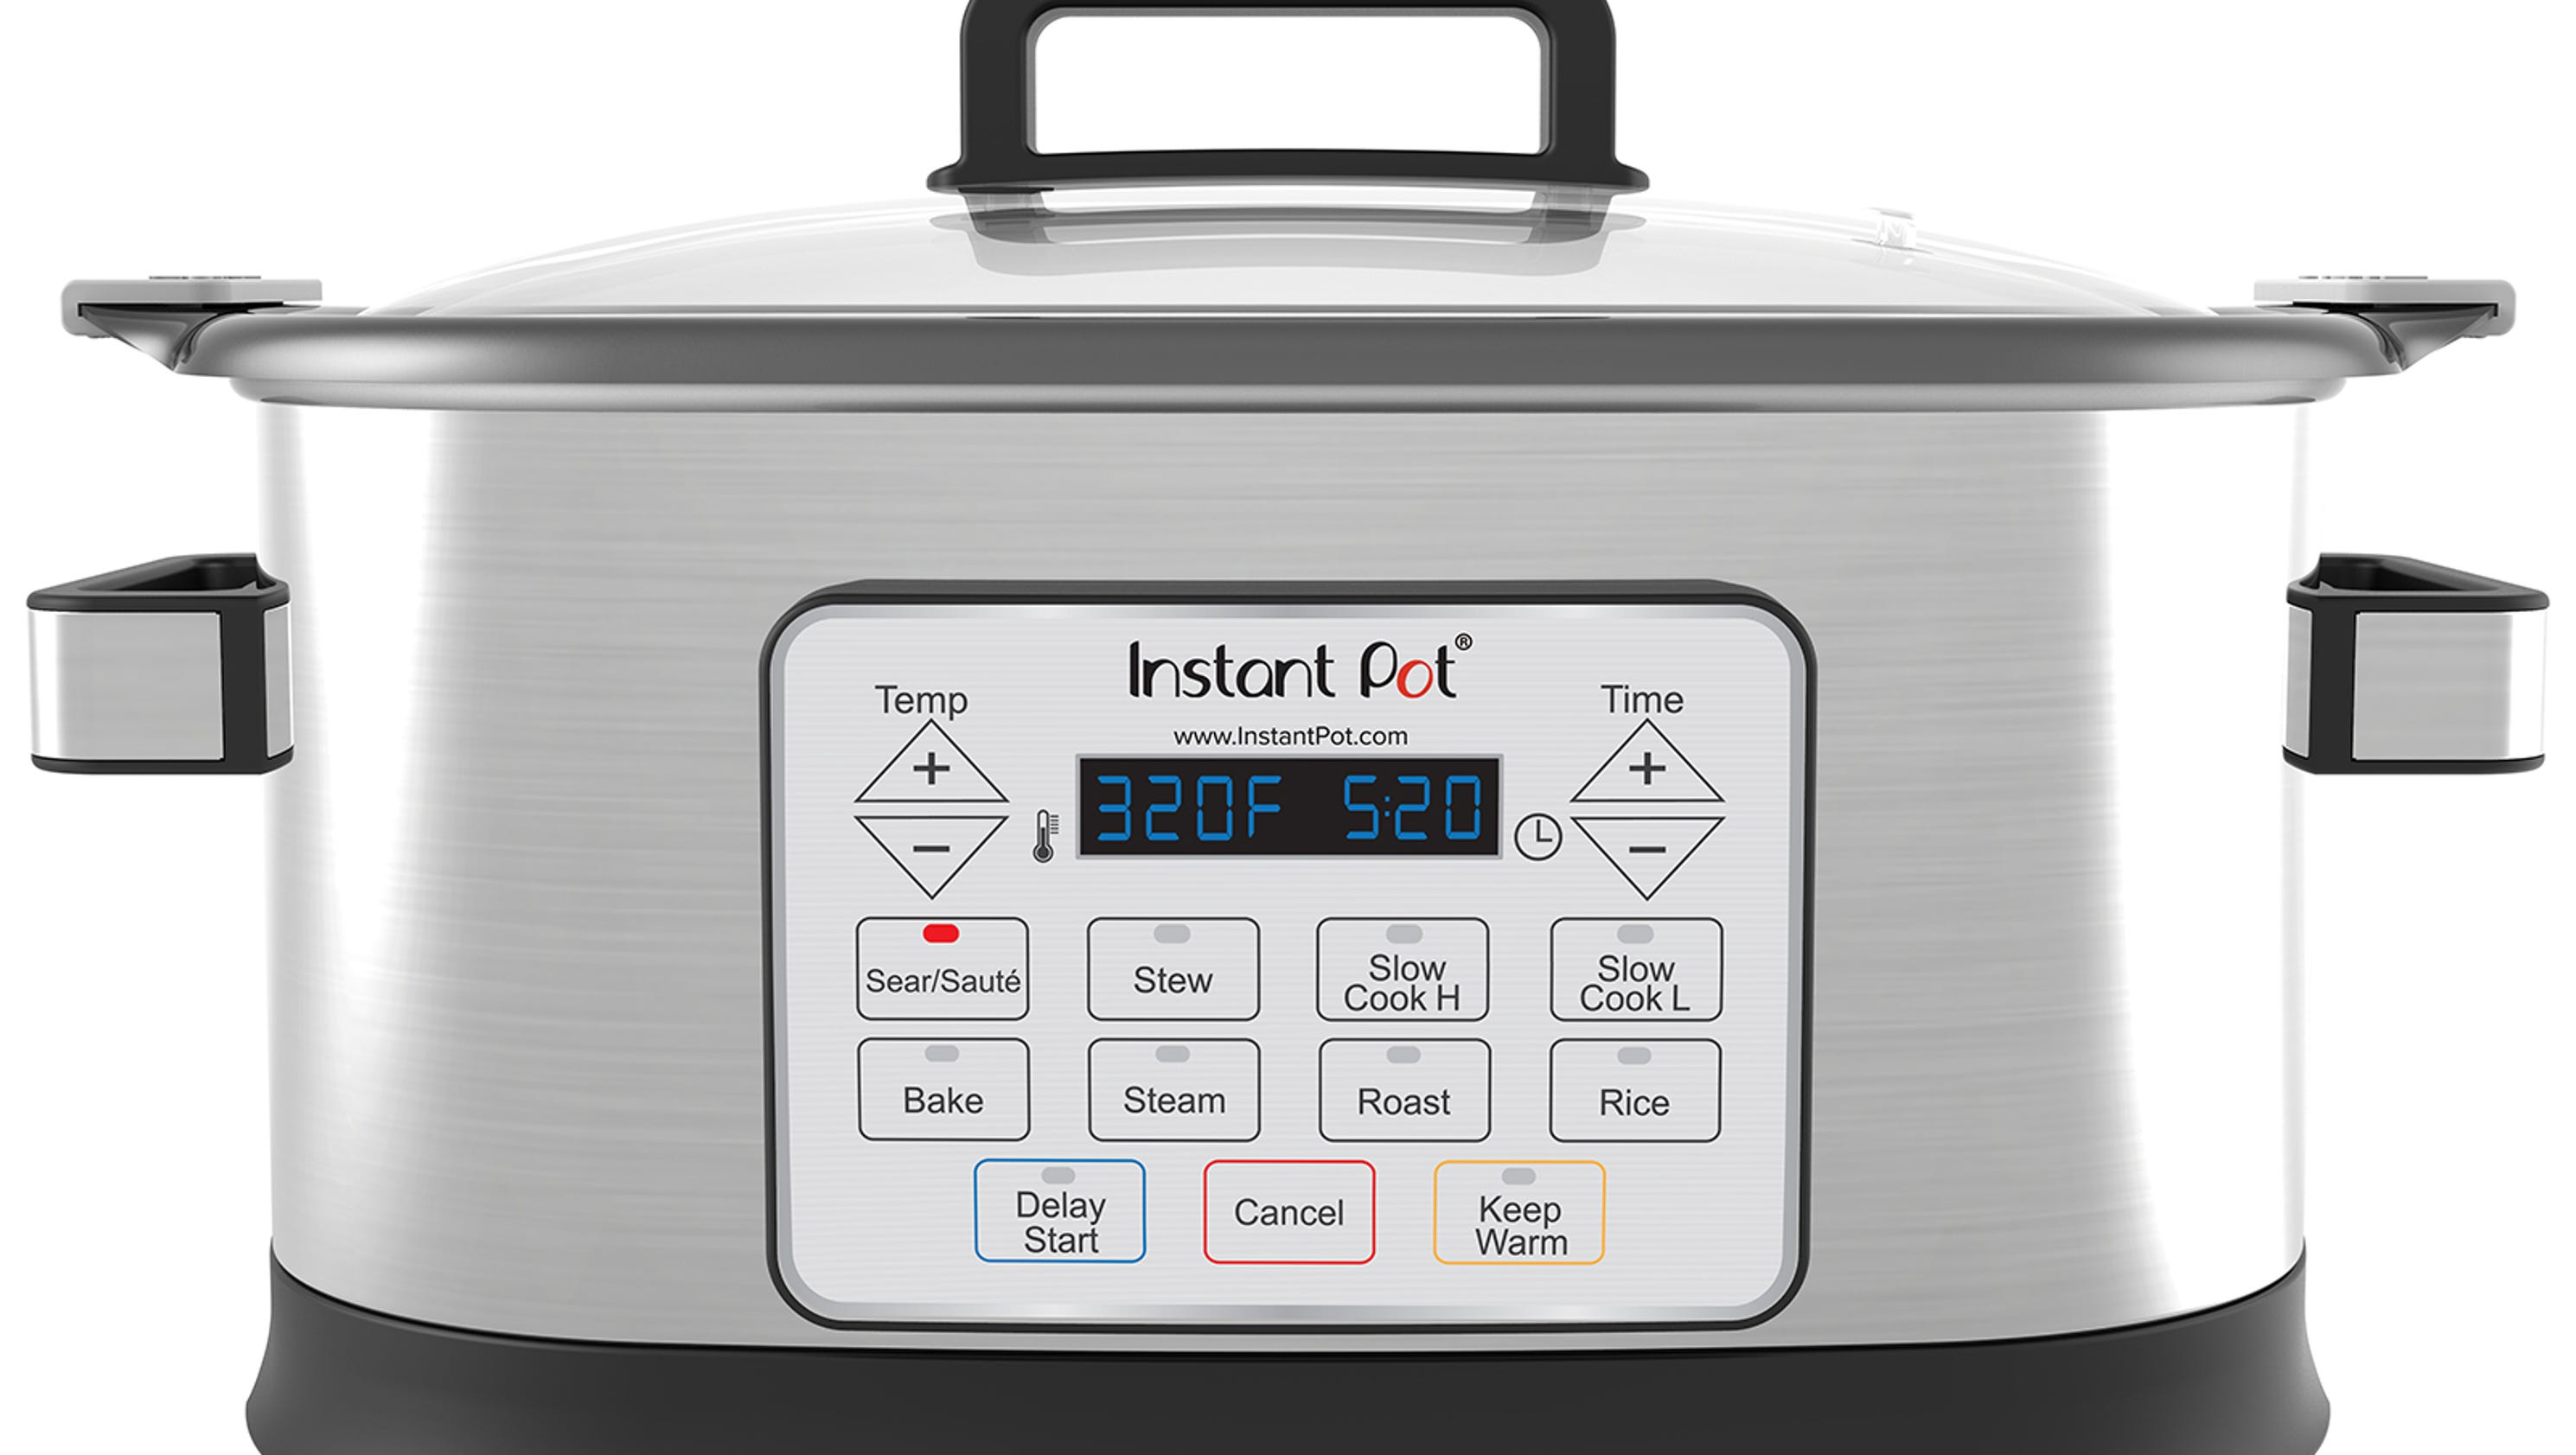 Instant Pot orders recall of 104,000 Gem 65 8-in-1 multi-cookers